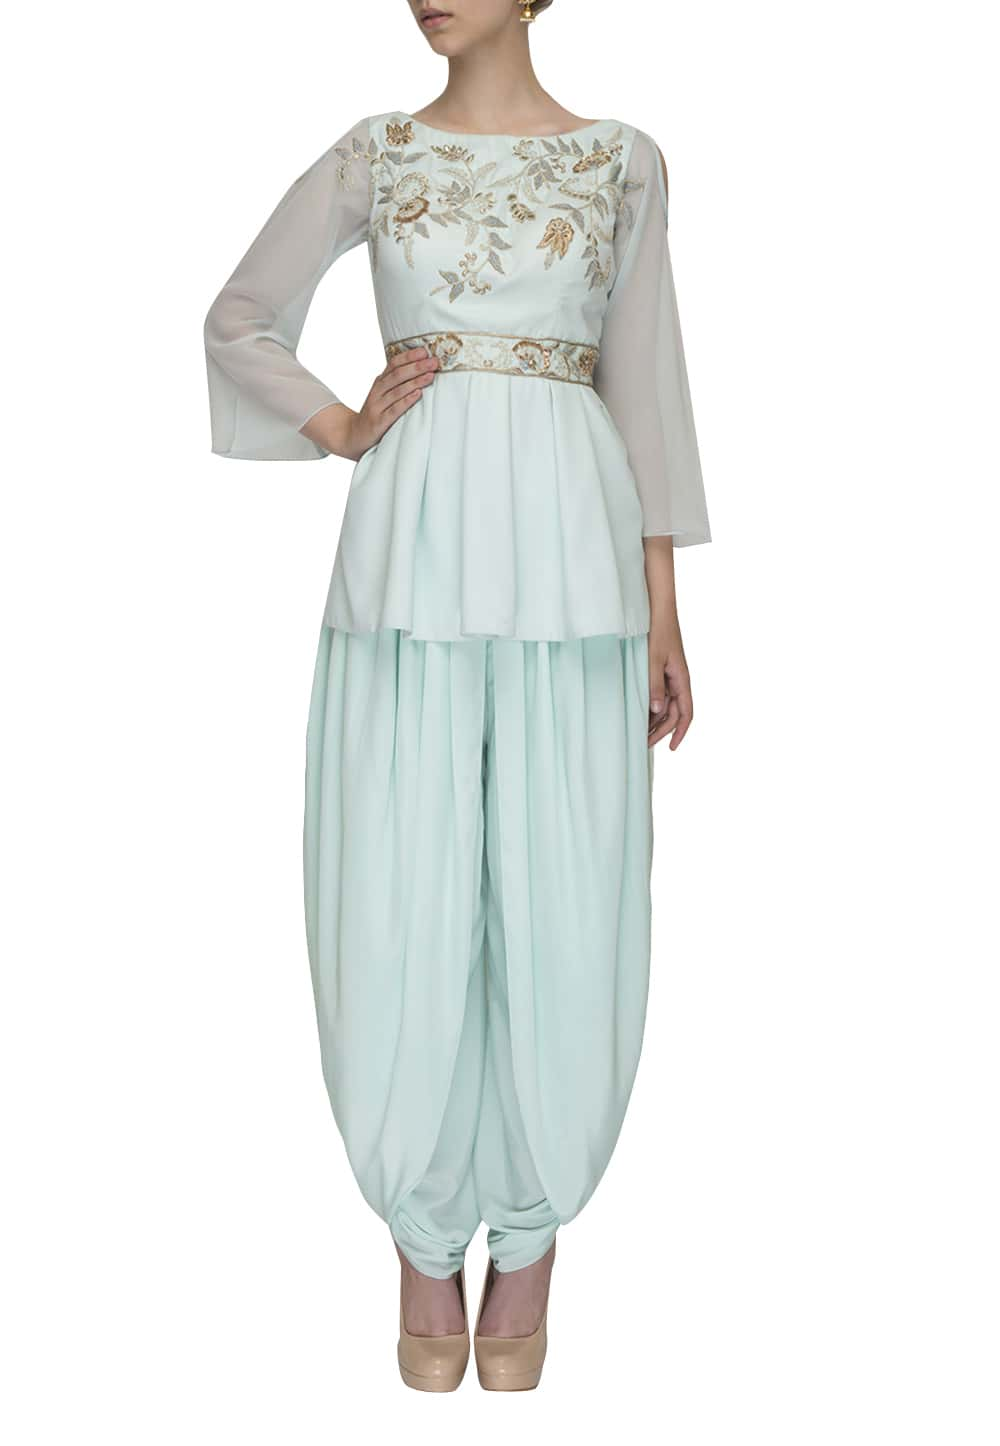 4a21d84c75ff22 Aqua hand and machine embroidered top and dhoti available only at IBFW